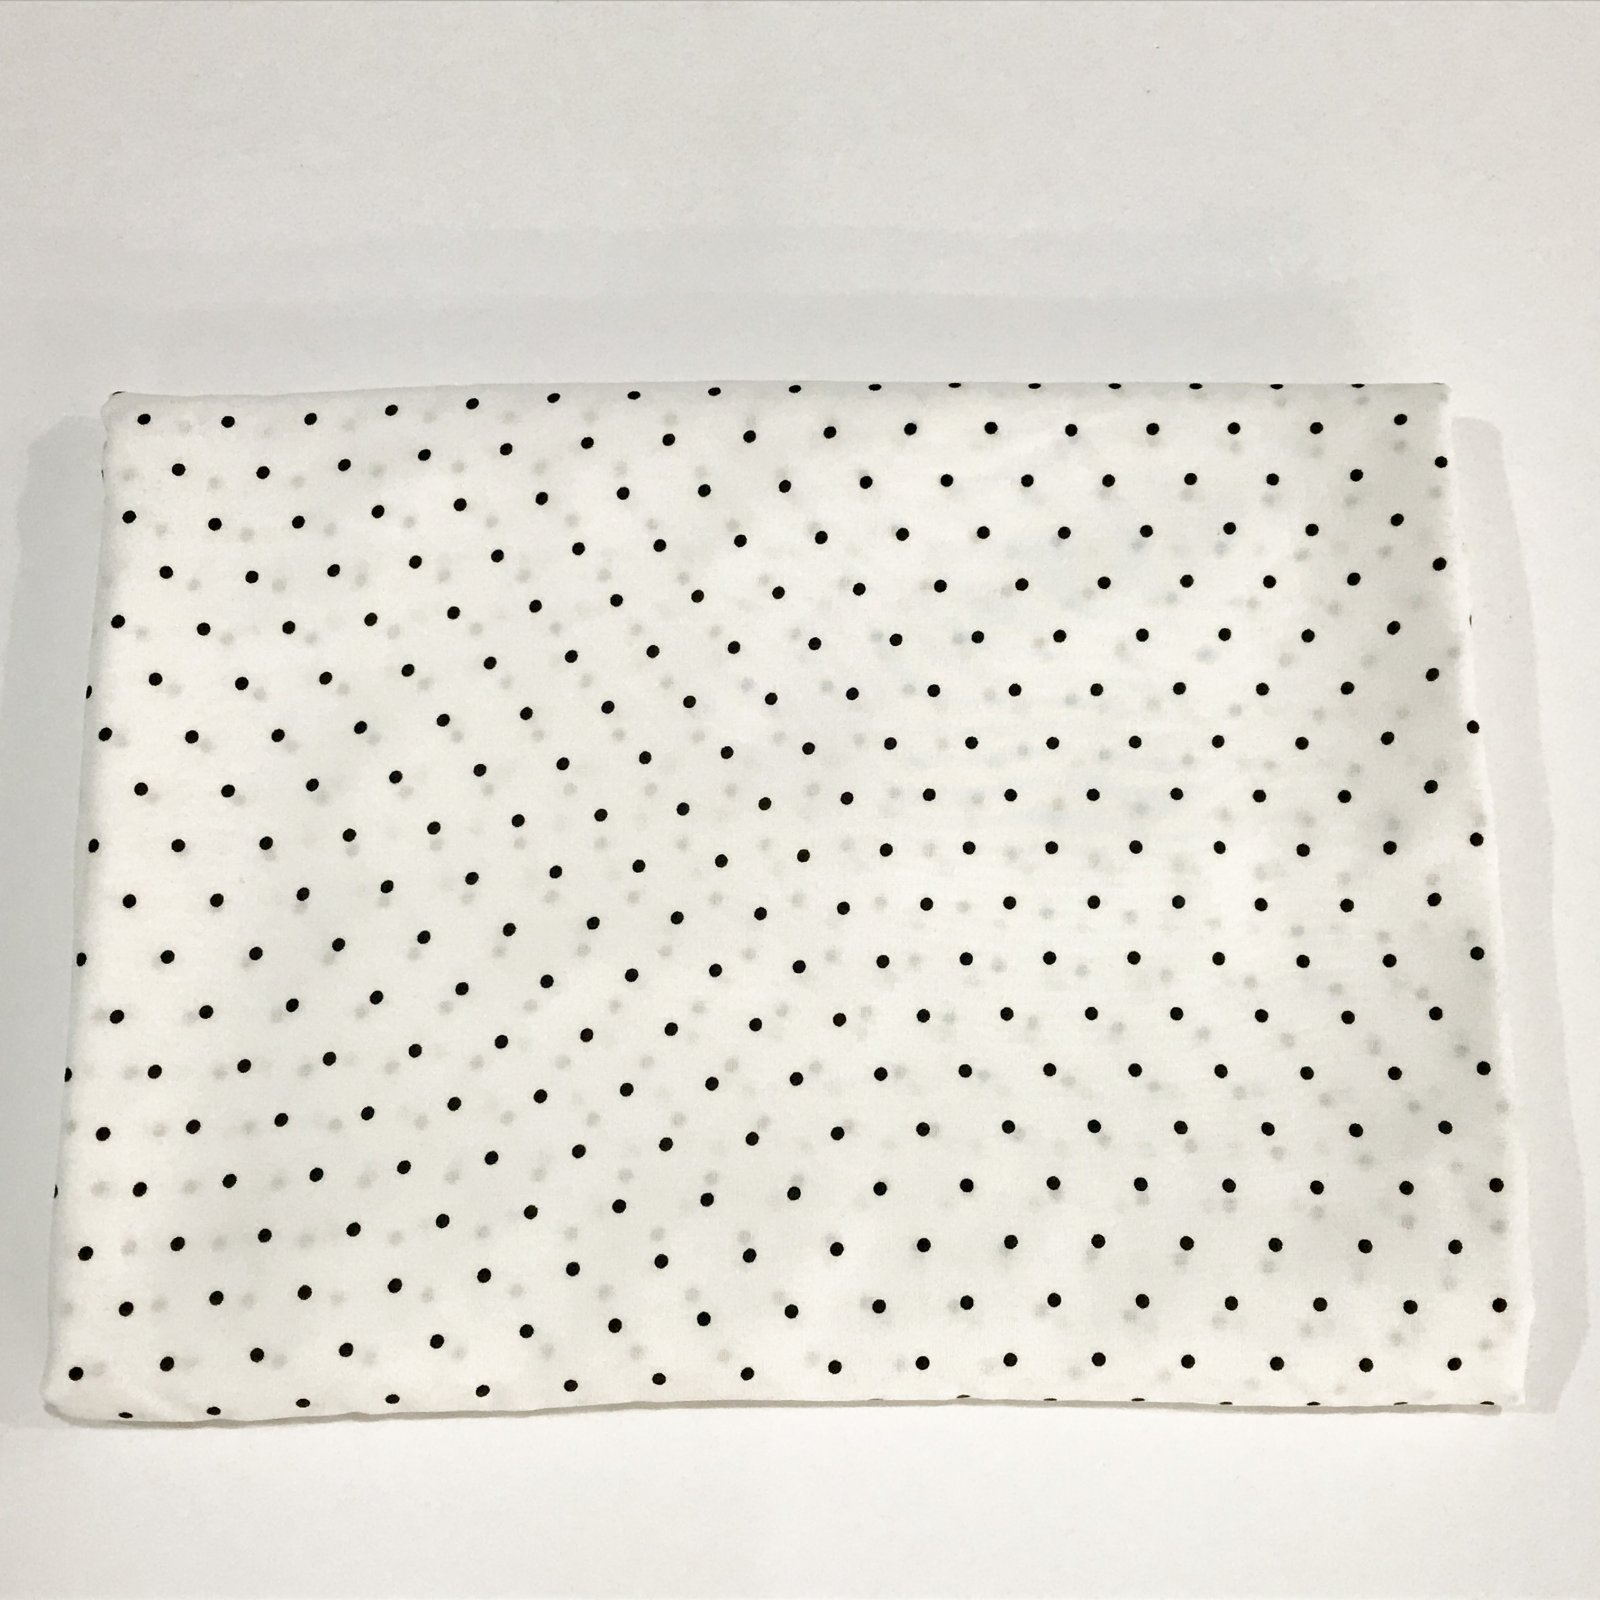 2 yards - Rayon Polka Dot Fun